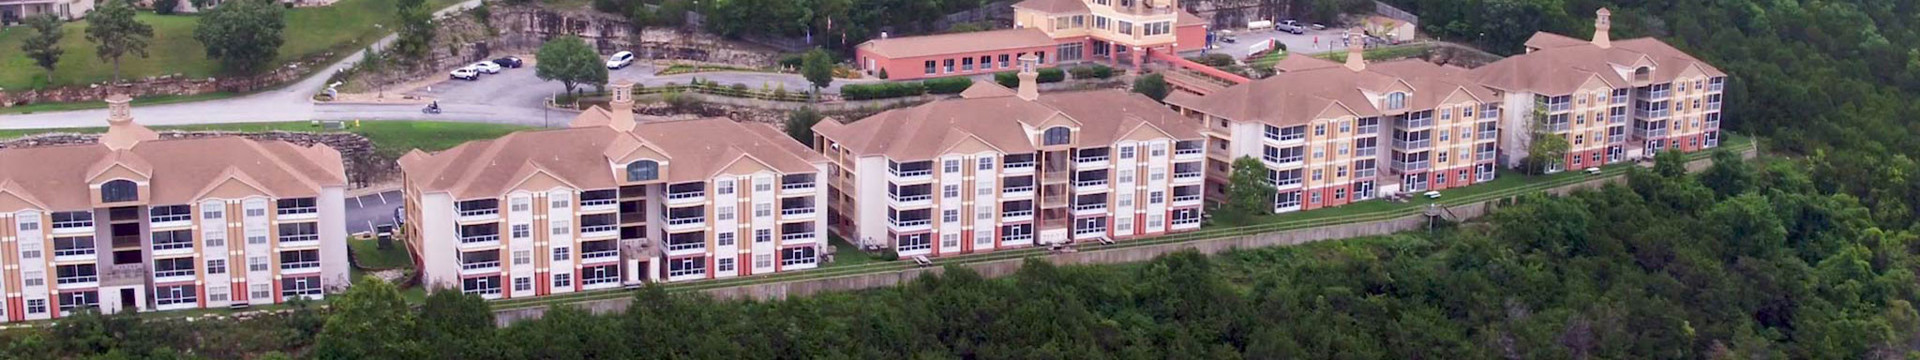 Branson Table Rock Lake Resort at Emerald Pointe | Resort Buildings Overlooking Table Rock Lake